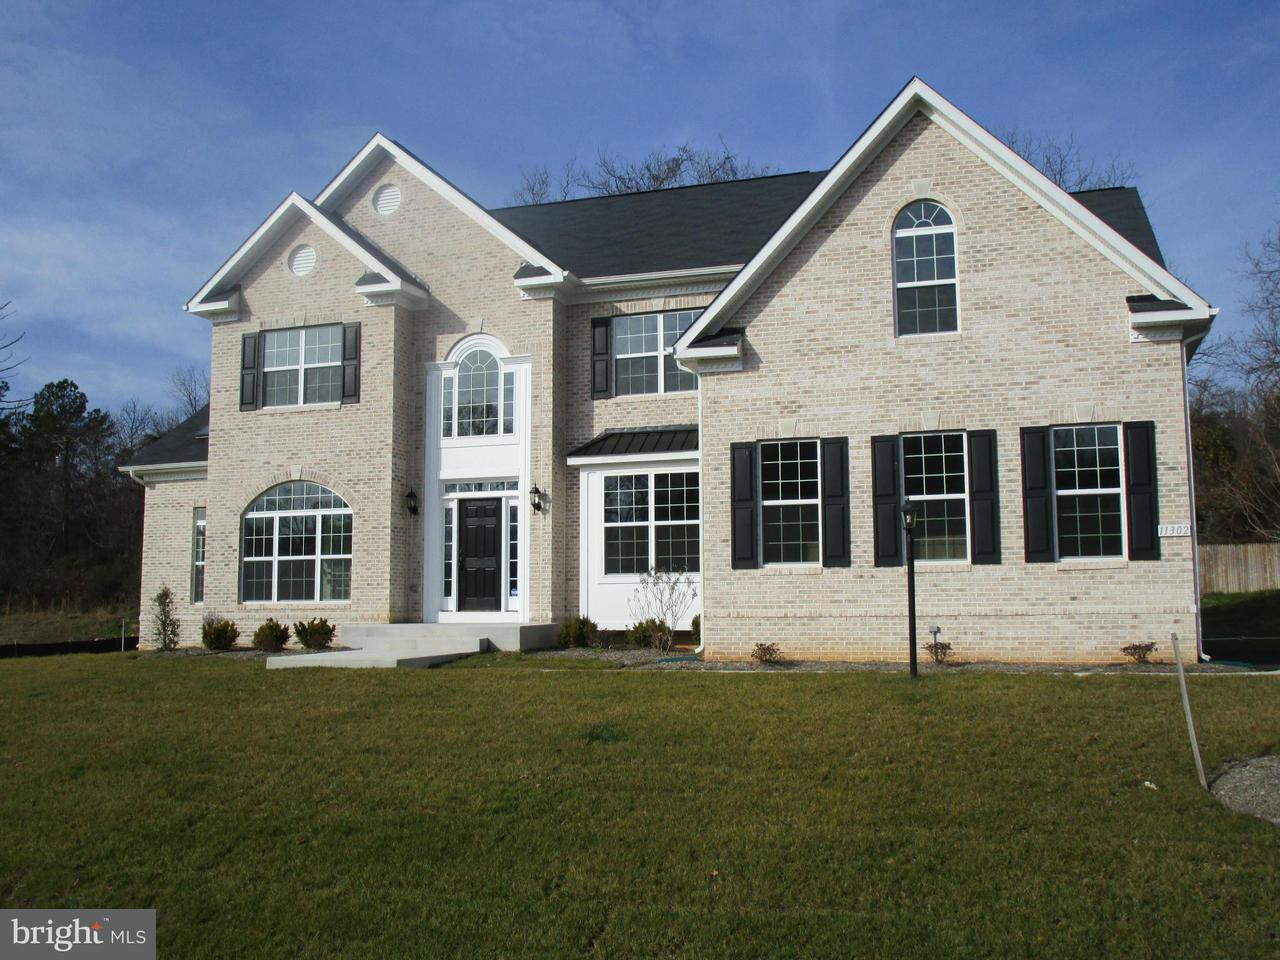 Single Family Home for Sale at 2615 WEARY CREEK Court 2615 WEARY CREEK Court Bowie, Maryland 20716 United States